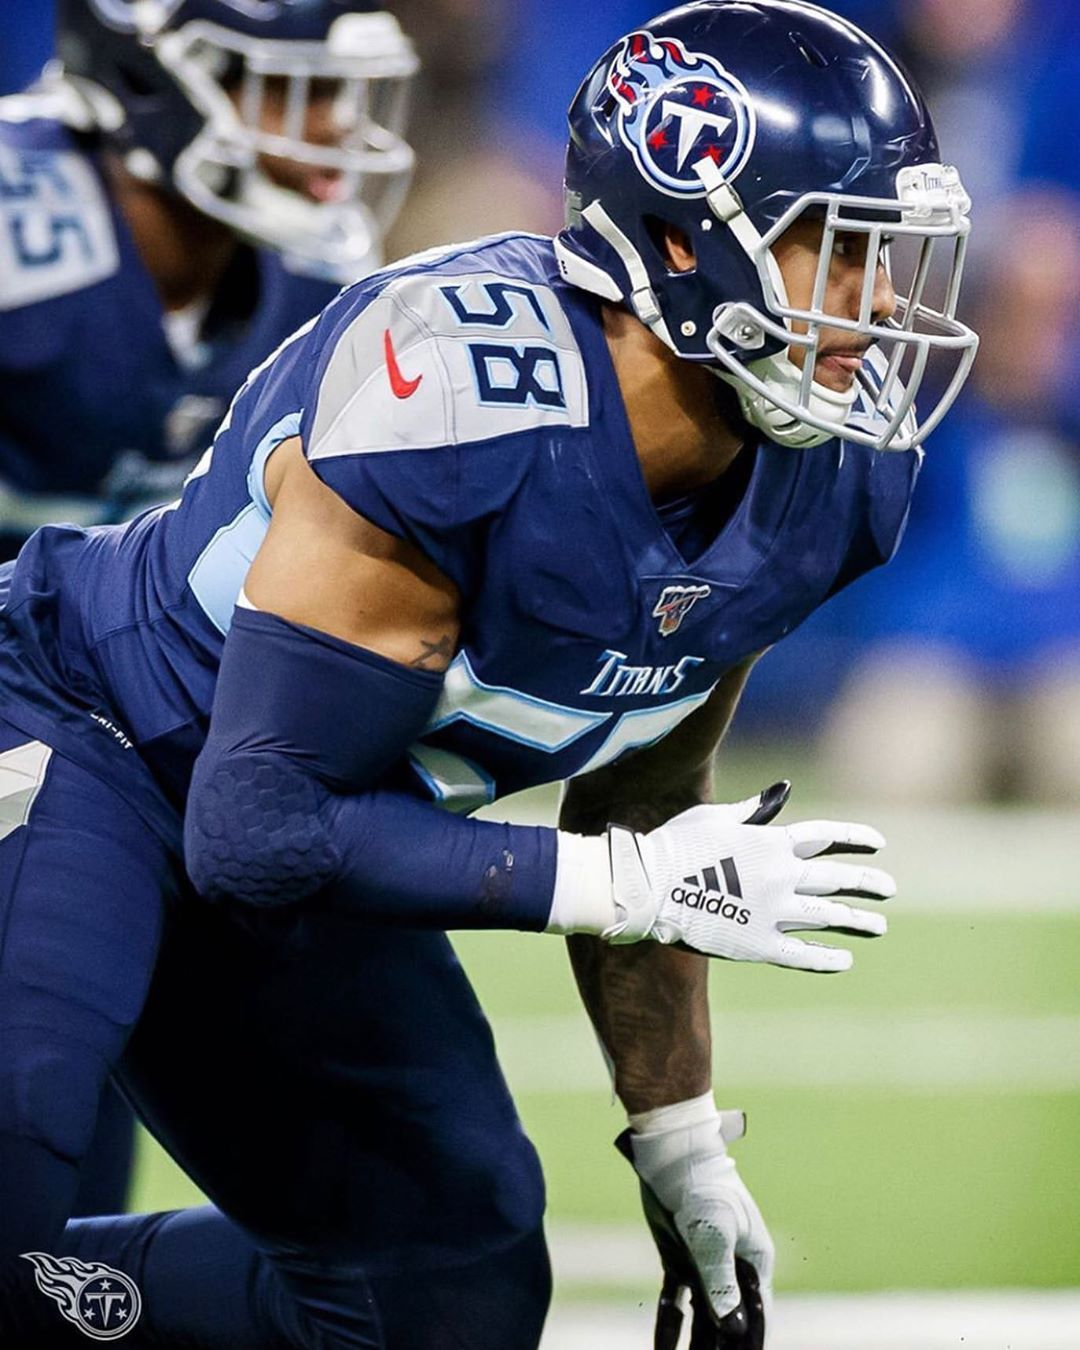 Tennessee Titans 5 8 In 2020 Tennessee Titans Tennessee Titans Football Tennessee